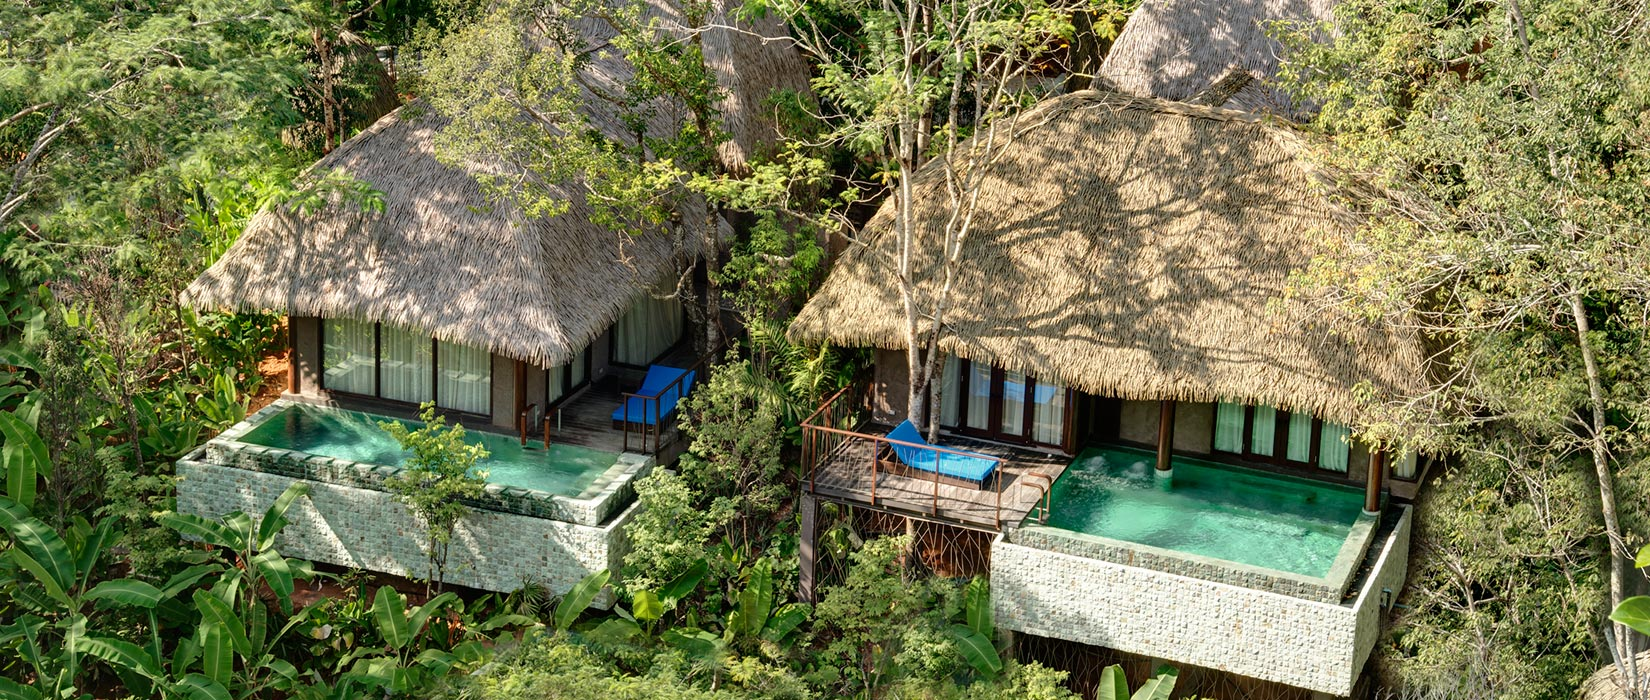 16 ONE AND TWO BEDROOM COTTAGES - Keemala Hotel Phuket